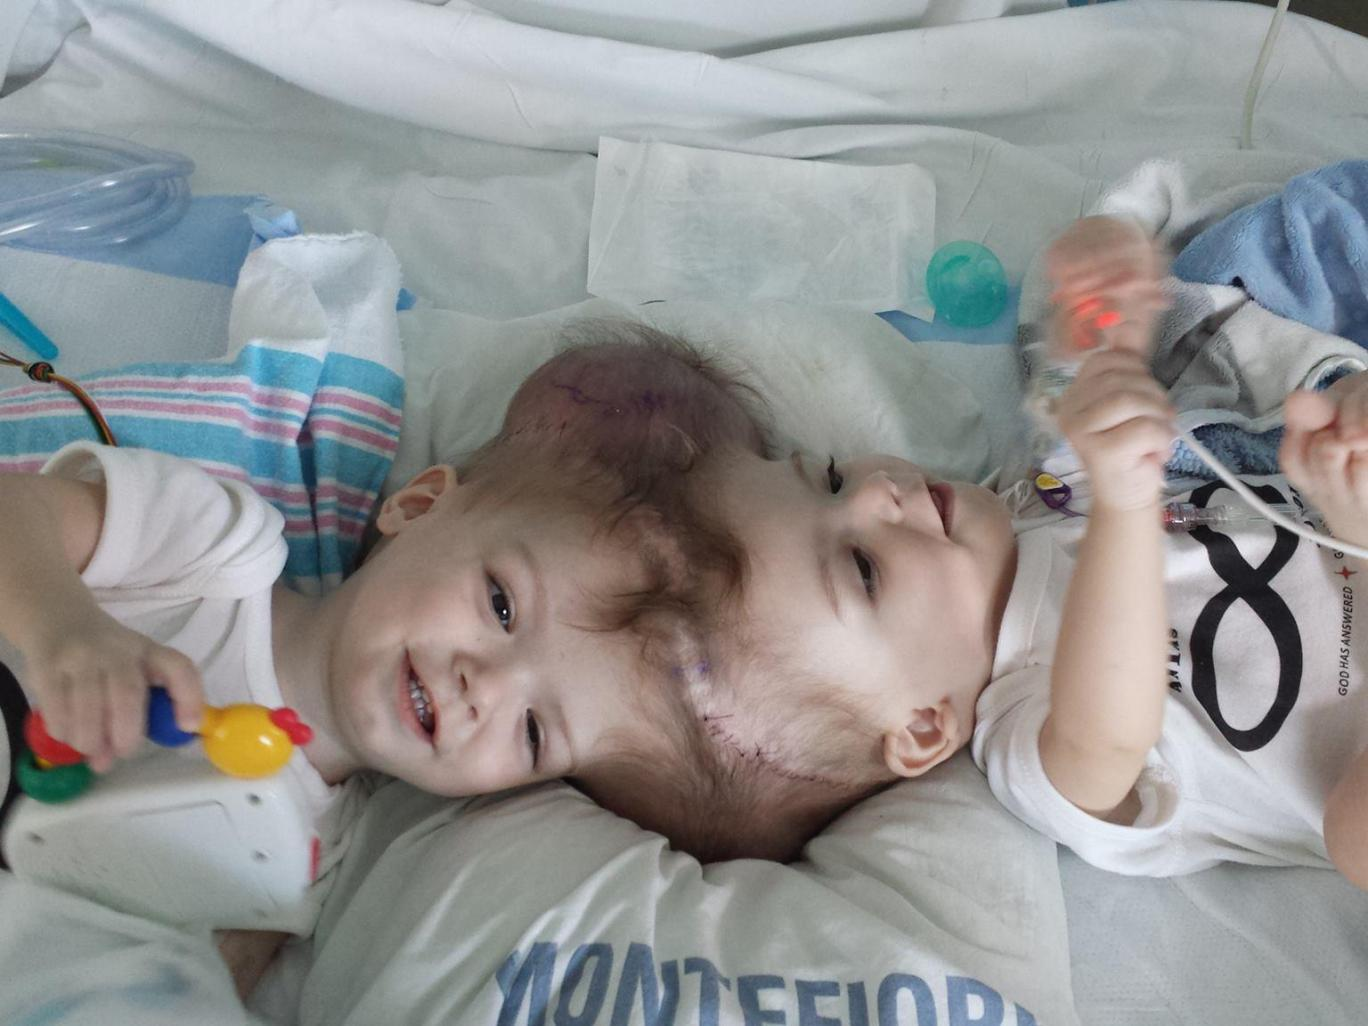 American Surgeons Successfully Separate 13-Month-Old Twin Boys Conjoined At Head